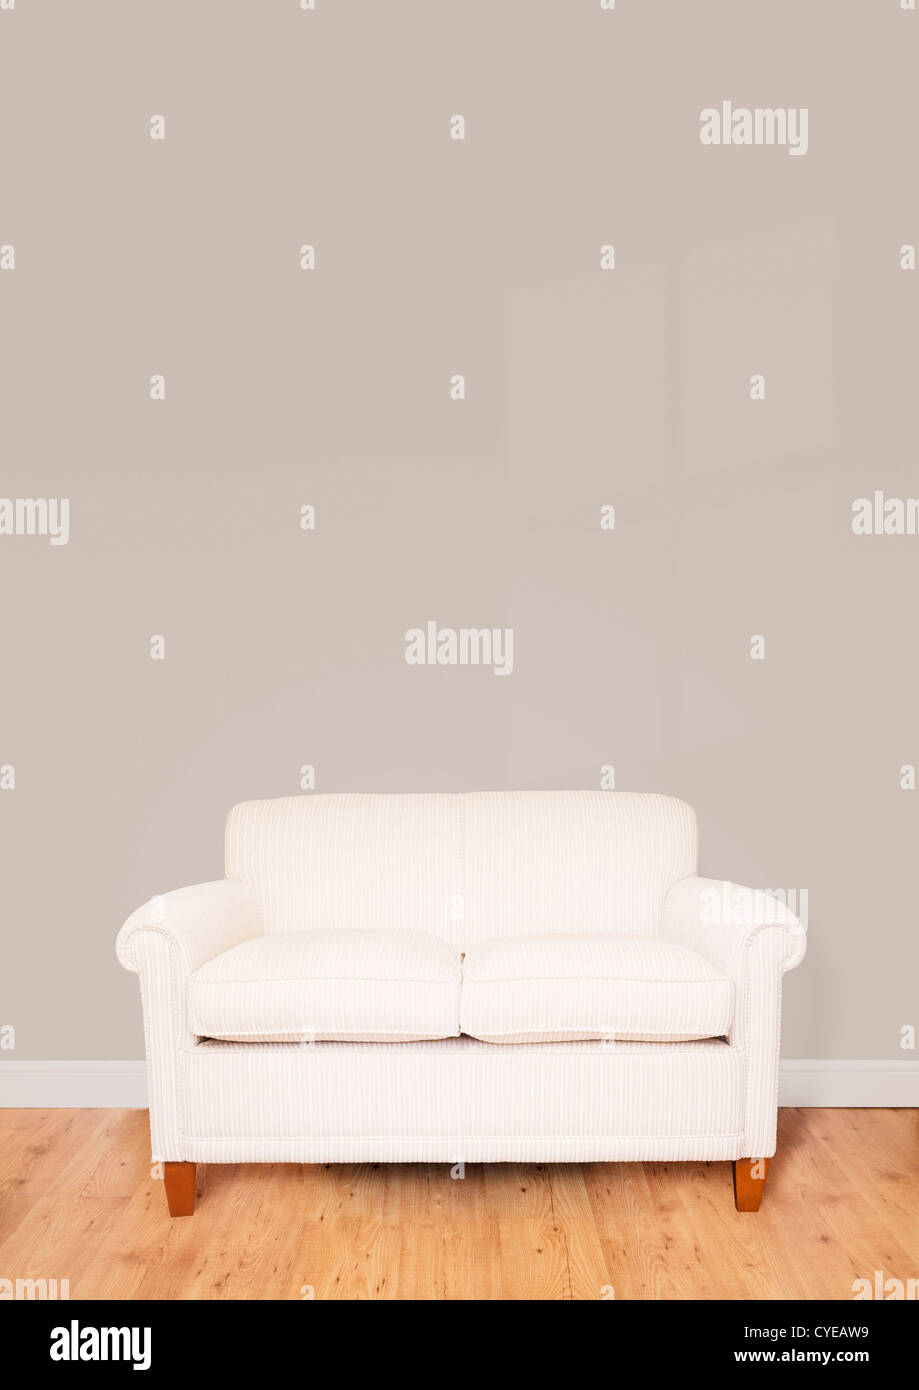 Modern cream sofa against a blank wall with lots of space for text - Stock Image